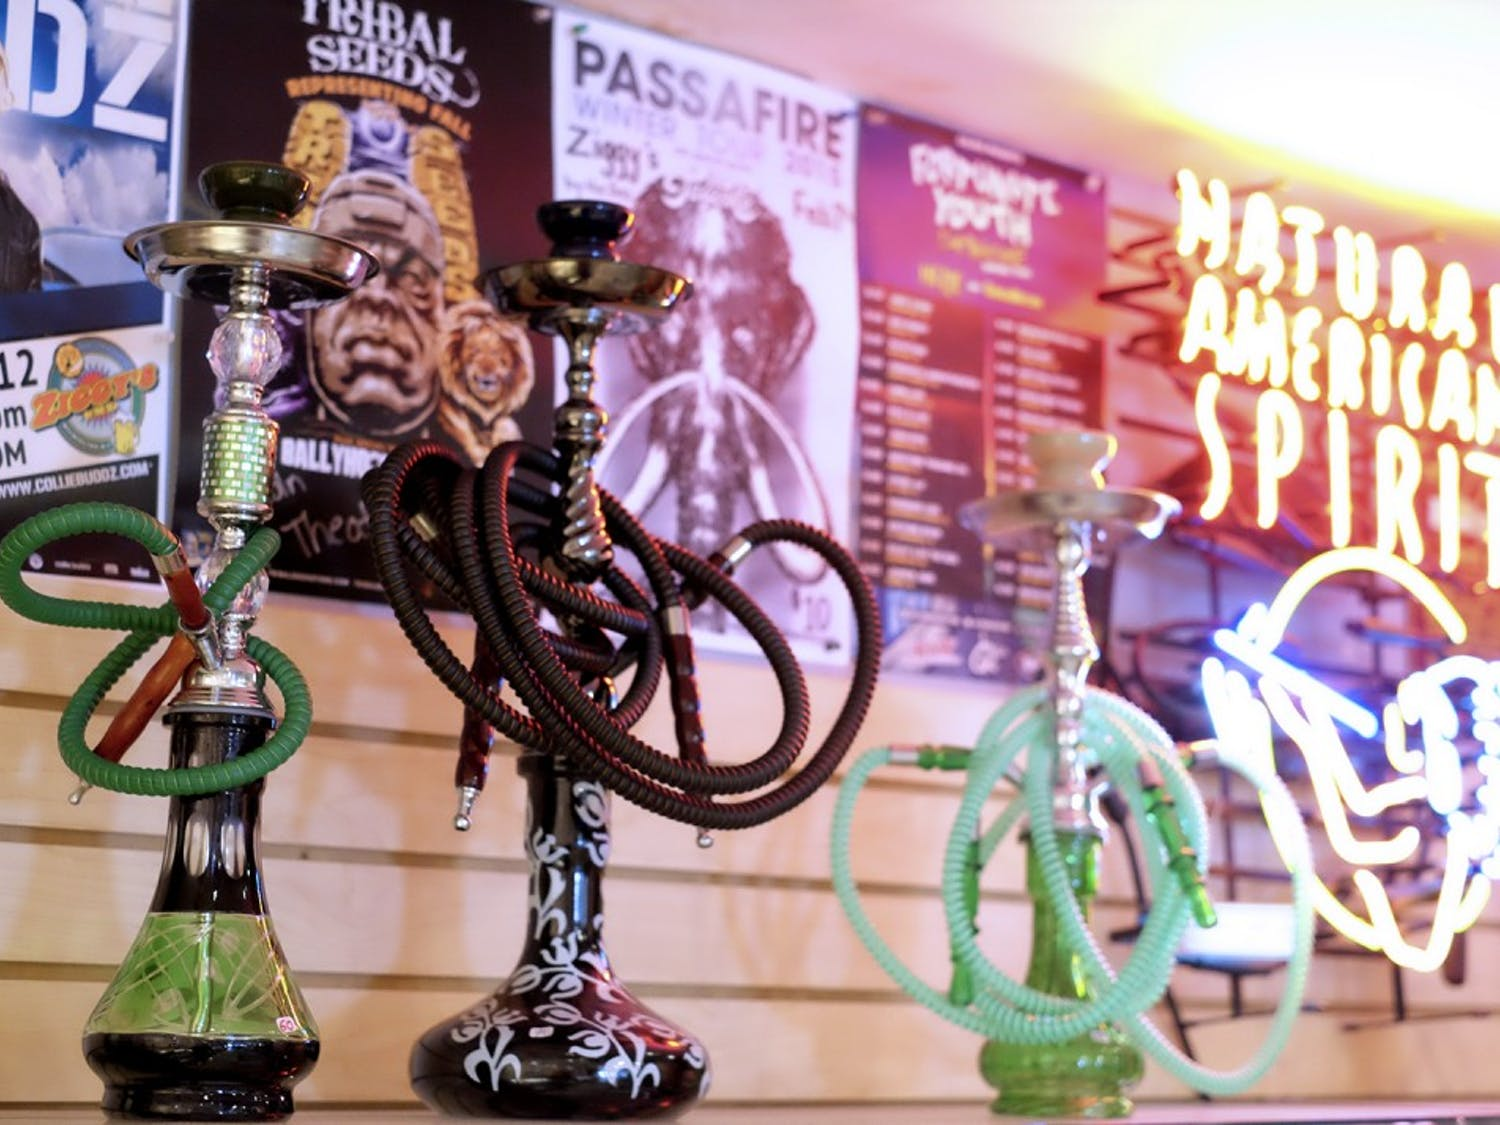 Hazmat, a local smoking accessory, apparel, and alternative goods store, has a large selection of personal Hookahs.